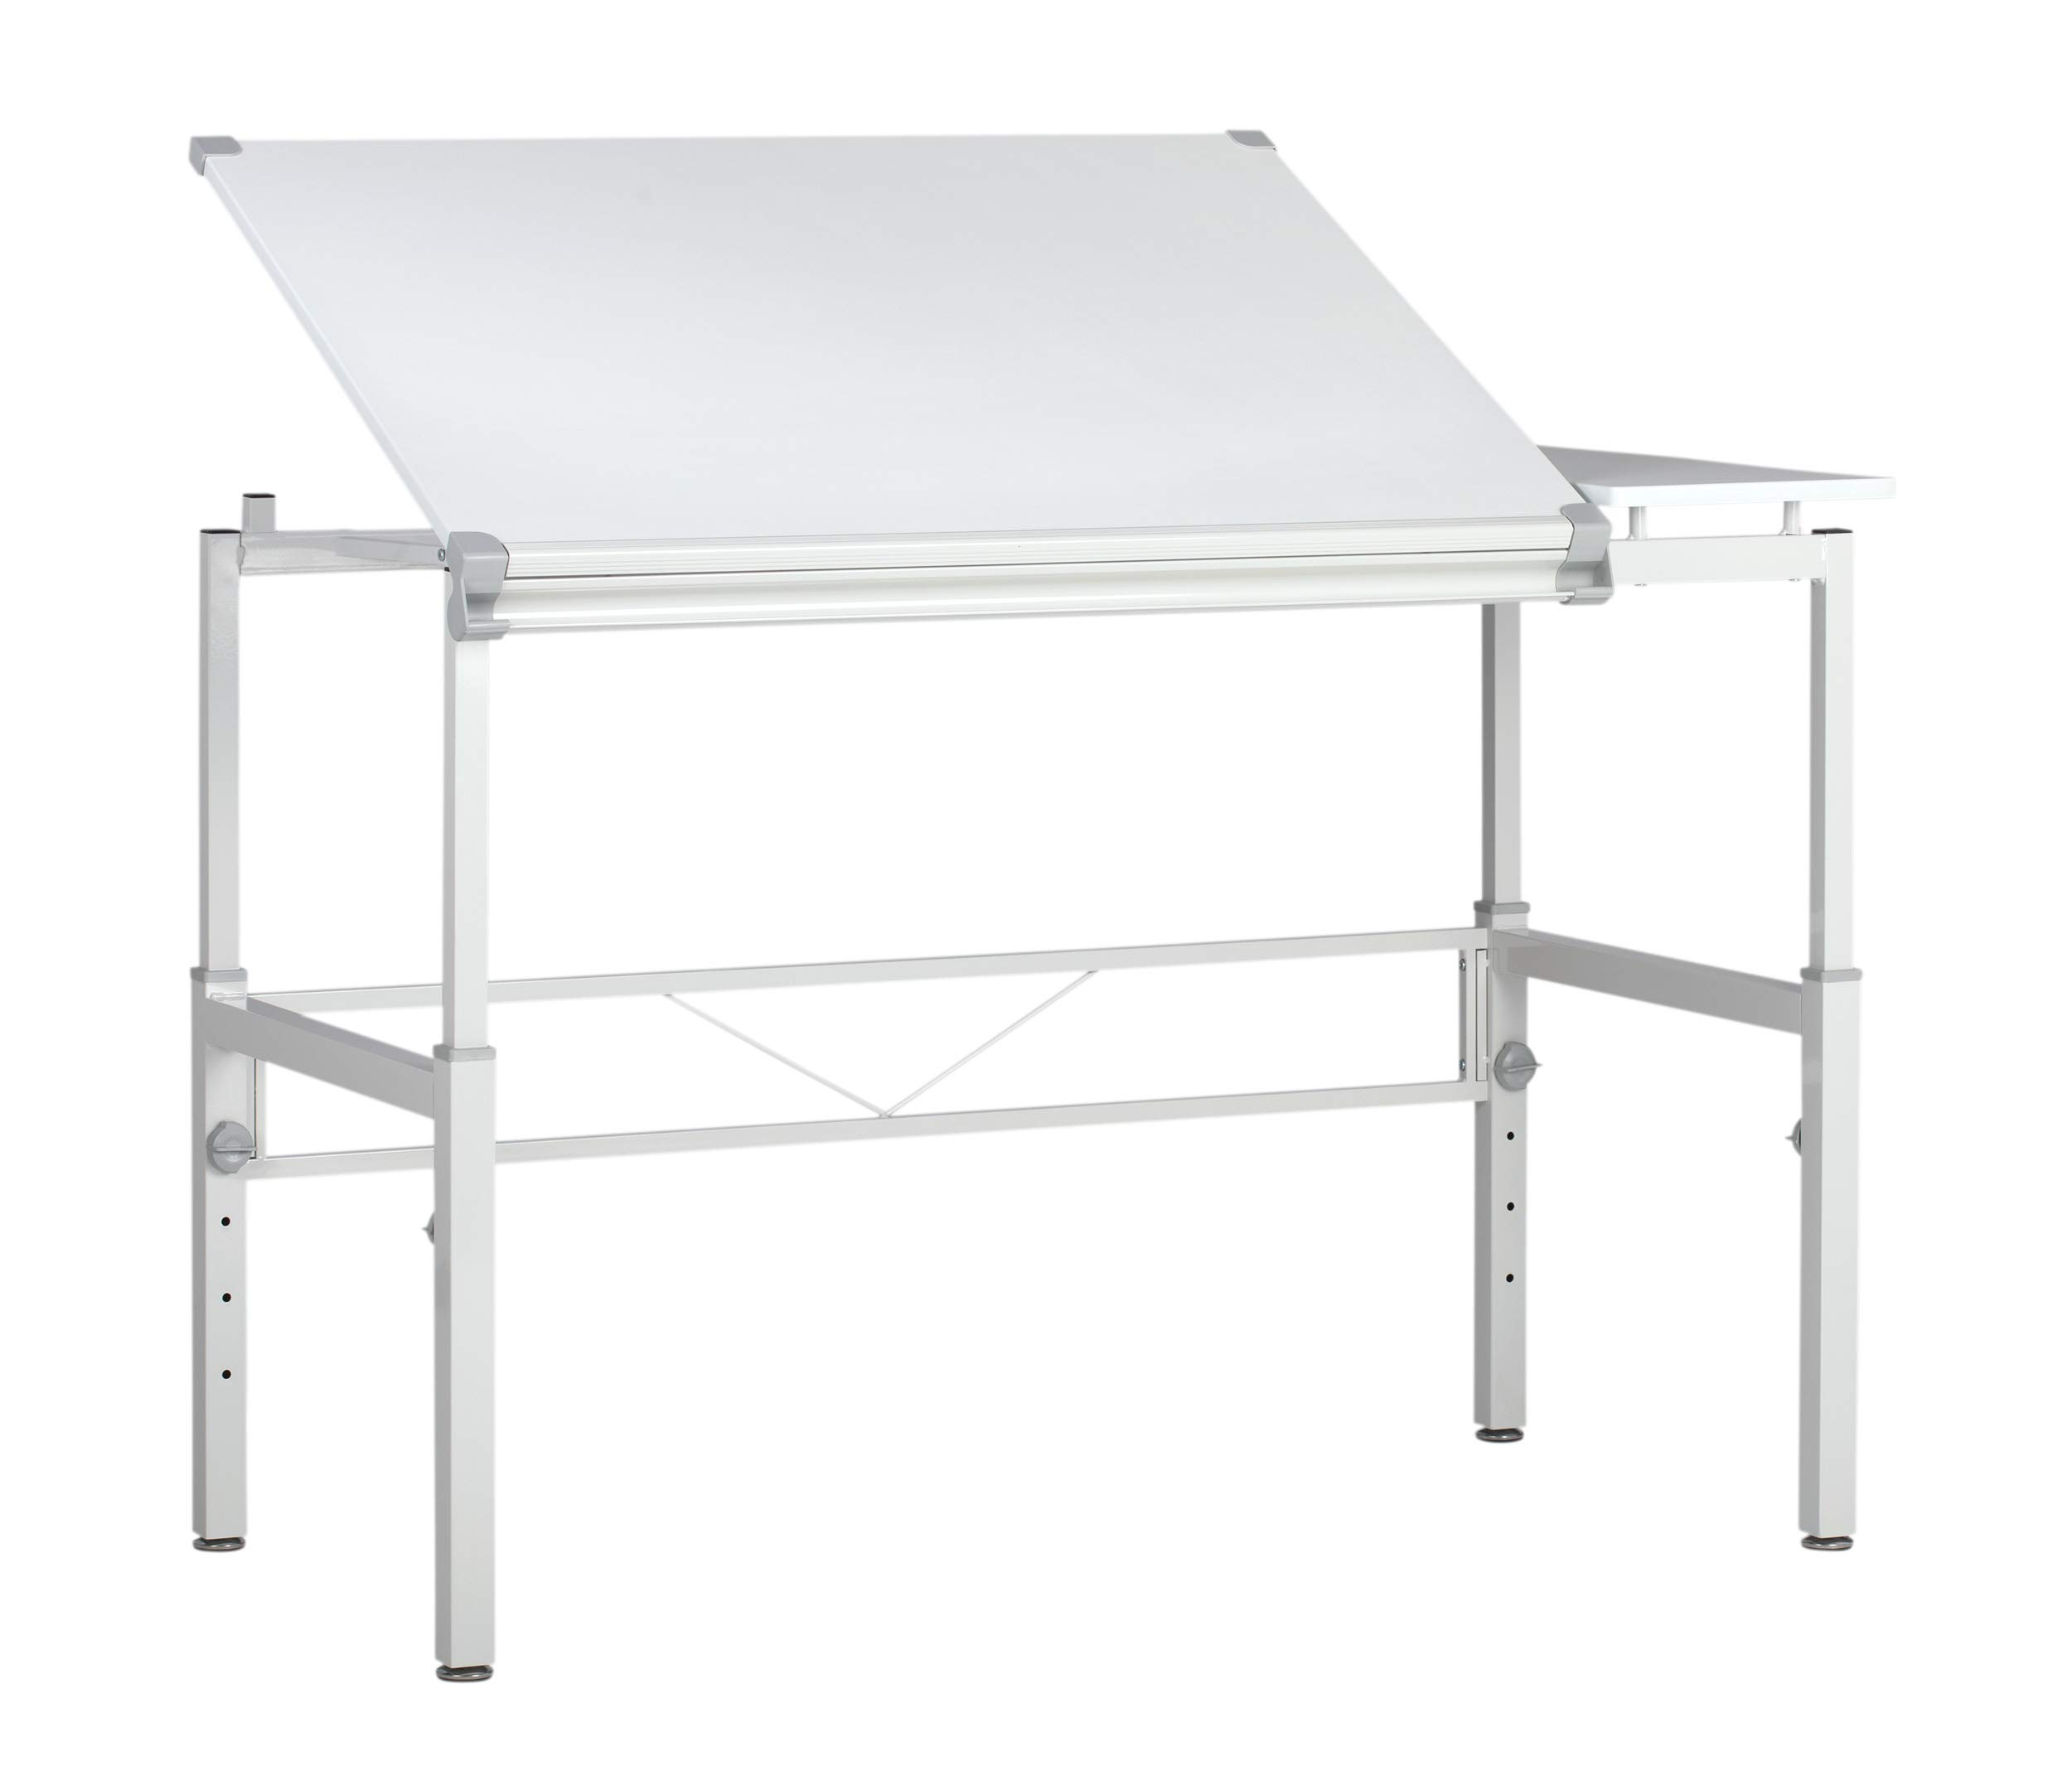 STUDIO DESIGNS Graphix II Workstation, 53.75''W x 31.25''D x 27'' - 38.75''H White/Gray 10210 by SD STUDIO DESIGNS